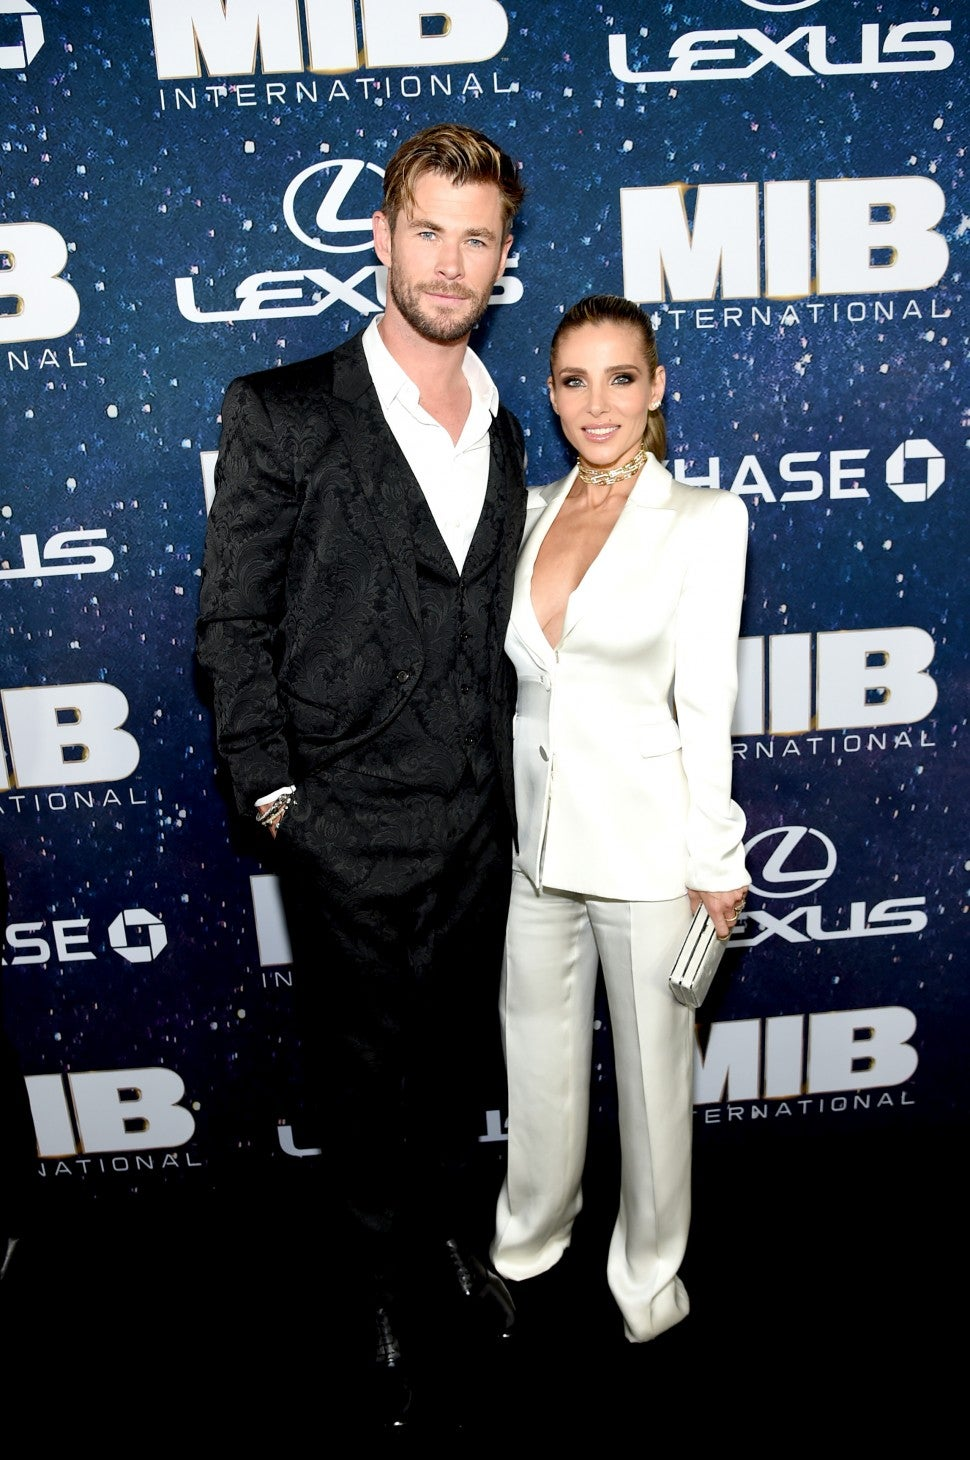 Chris Hemsworth and Elsa Pataky Men In Black International NY Premiere